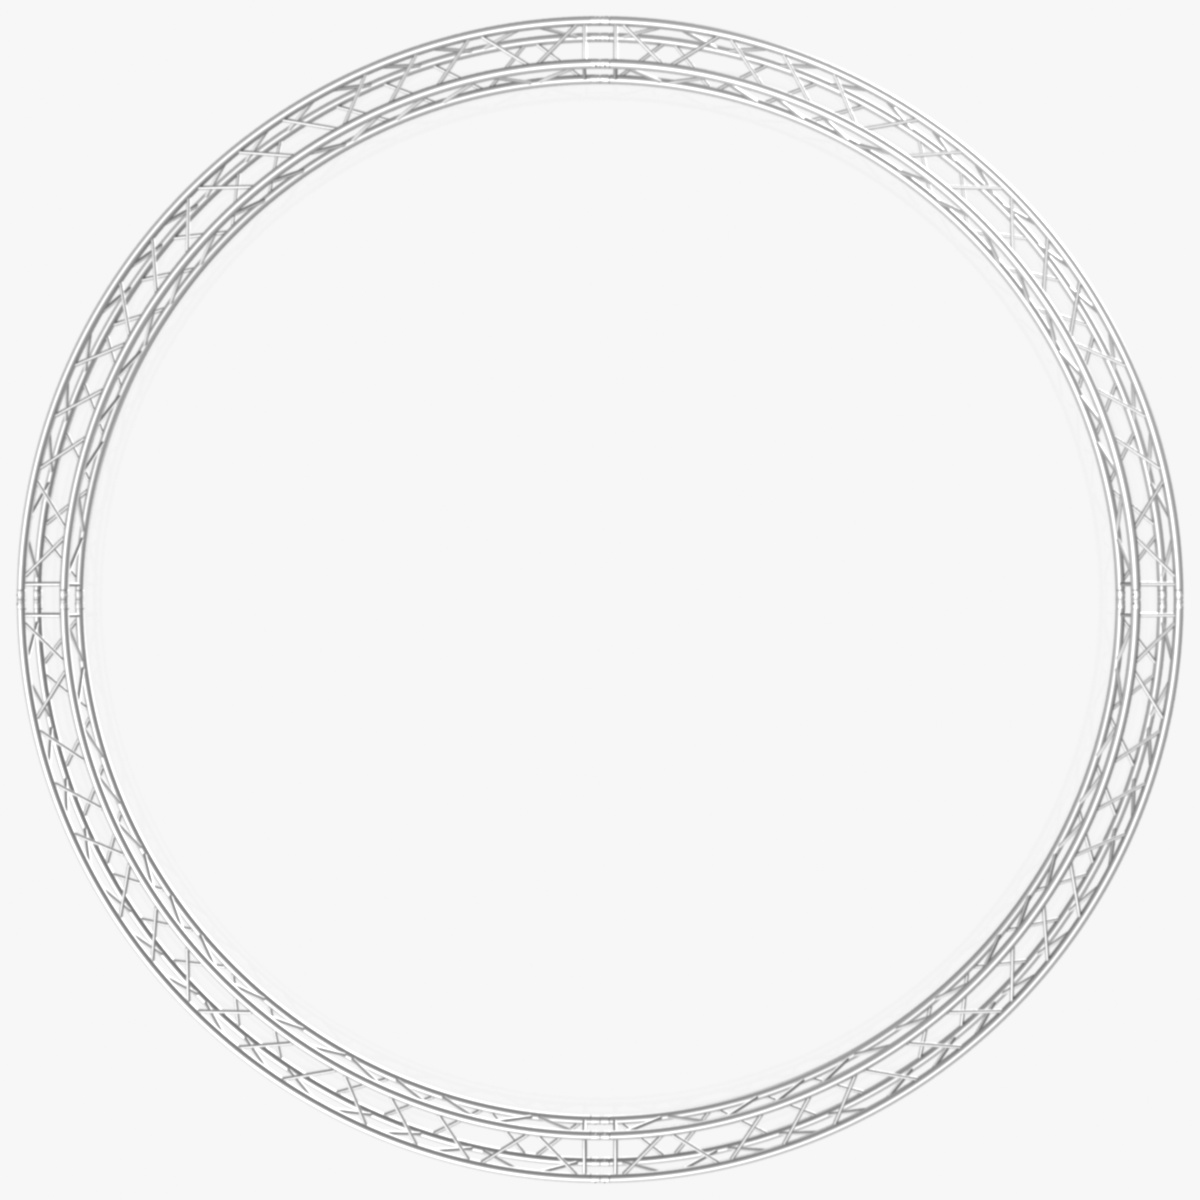 circle square truss (full diameter 600cm) 3d model 3ds max dxf fbx c4d dae  obj 253096